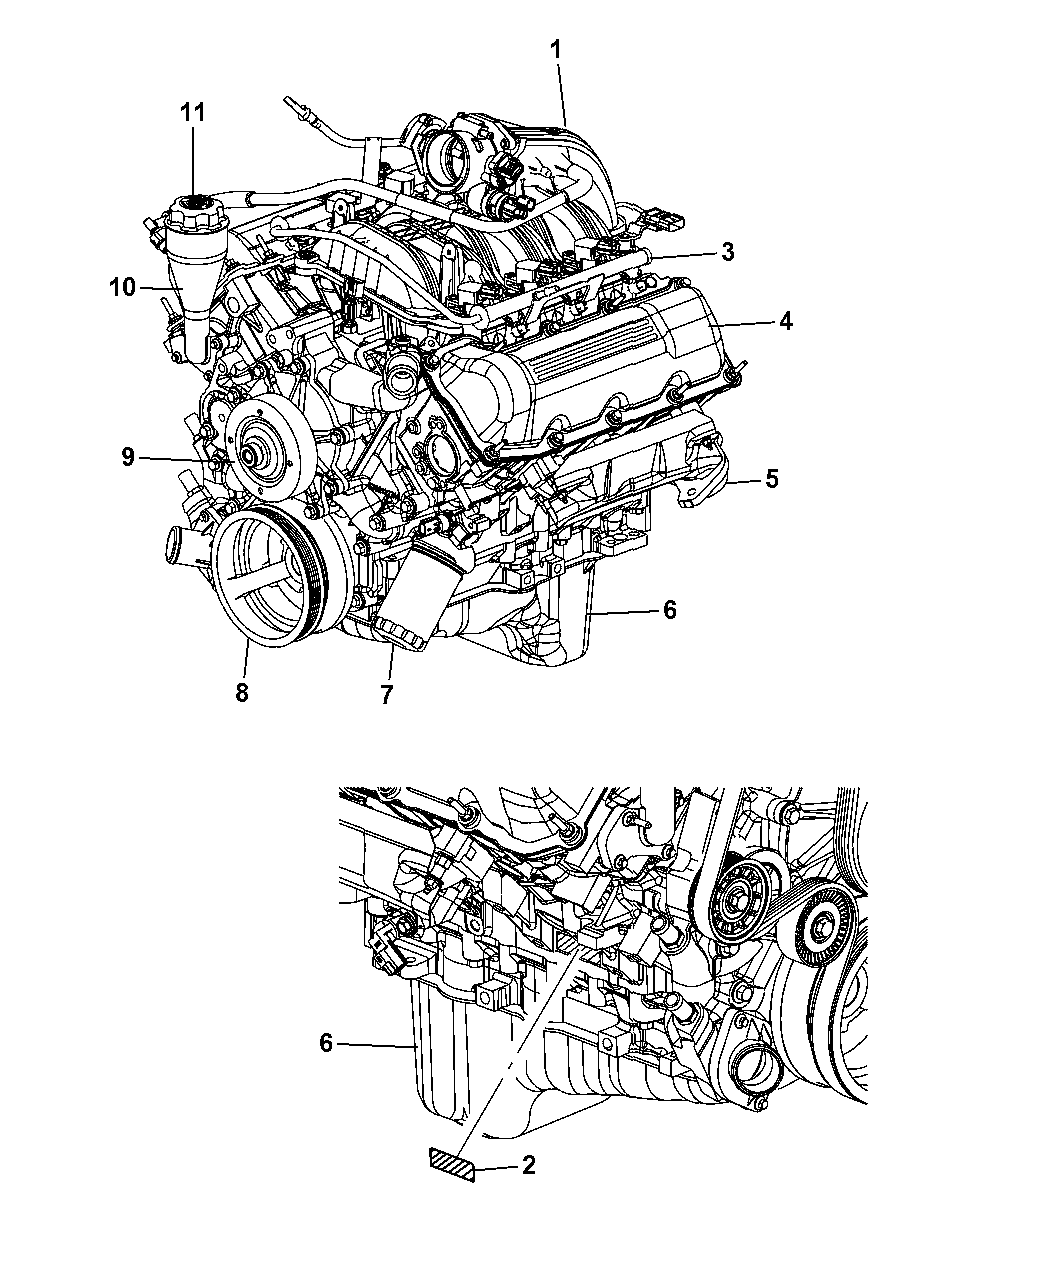 2007 Dodge Nitro Engine Assembly & Identification - Thumbnail 2